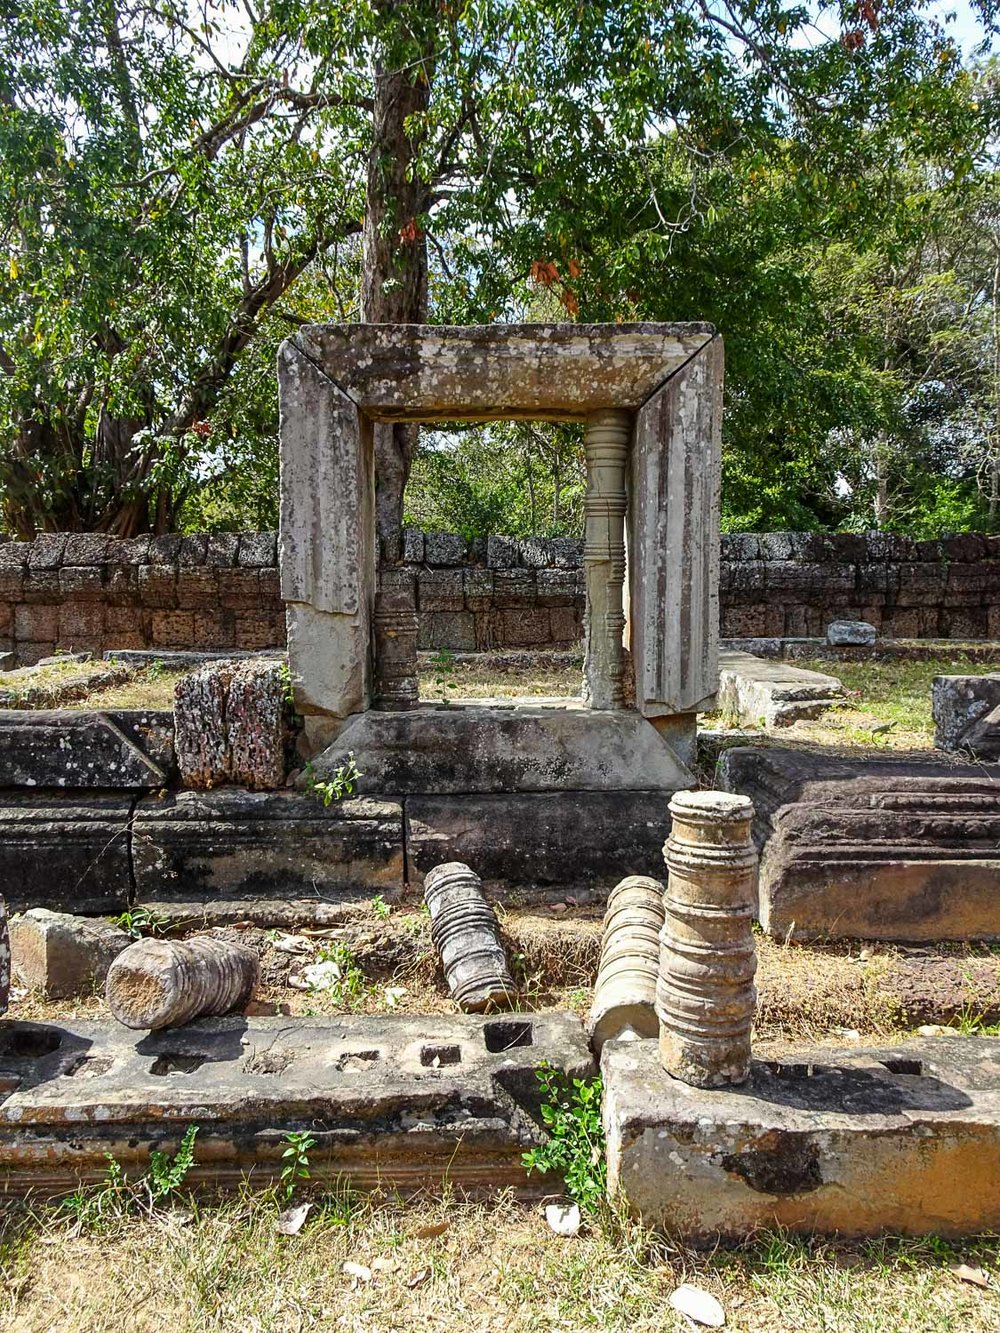 Ruins on the grounds of East Mebon